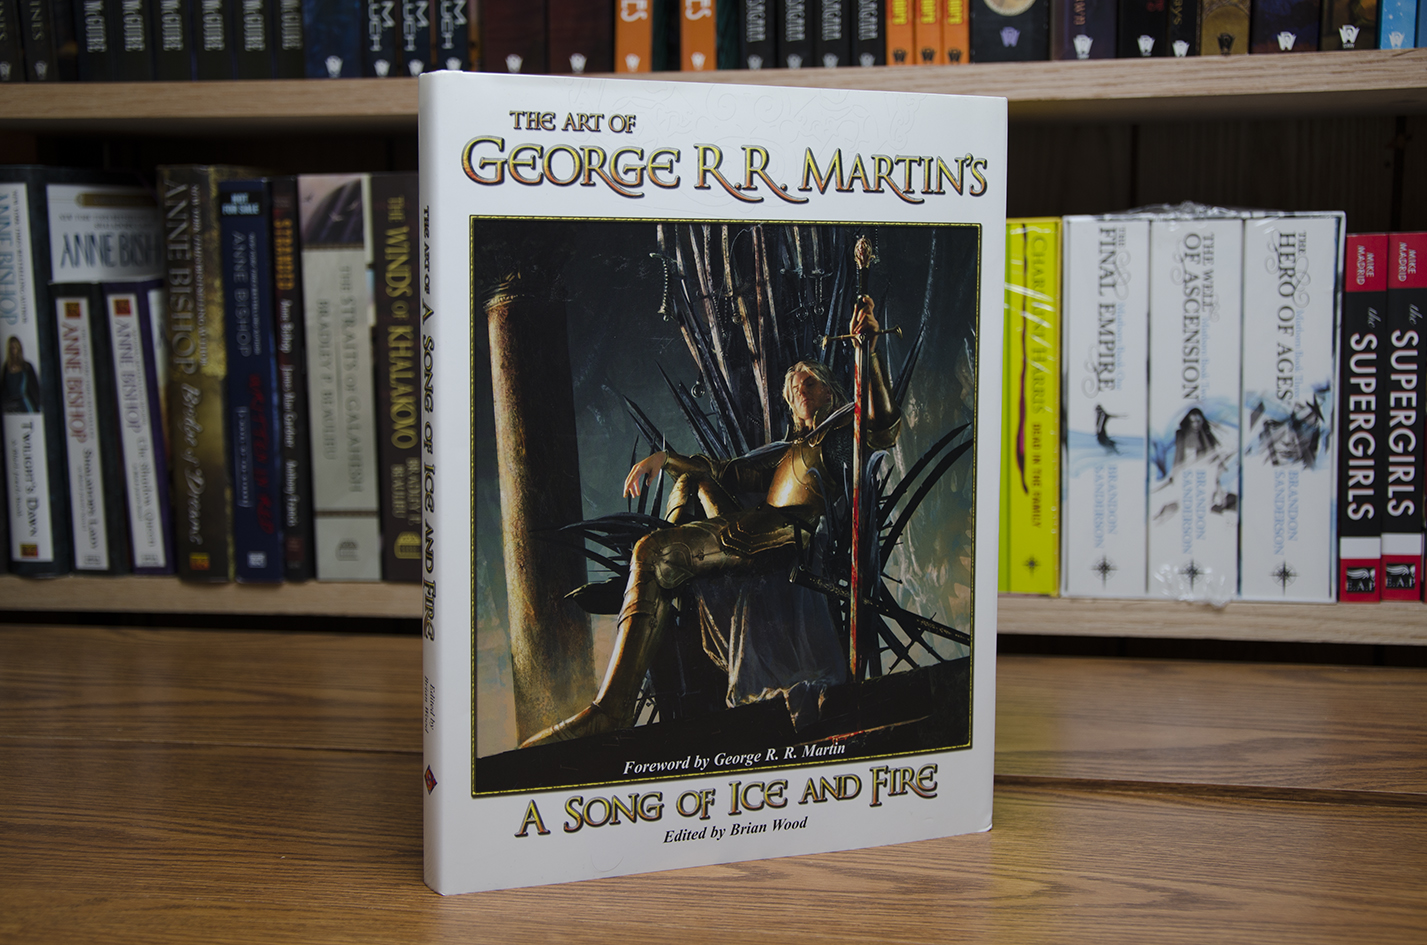 a song of ice and fire guide